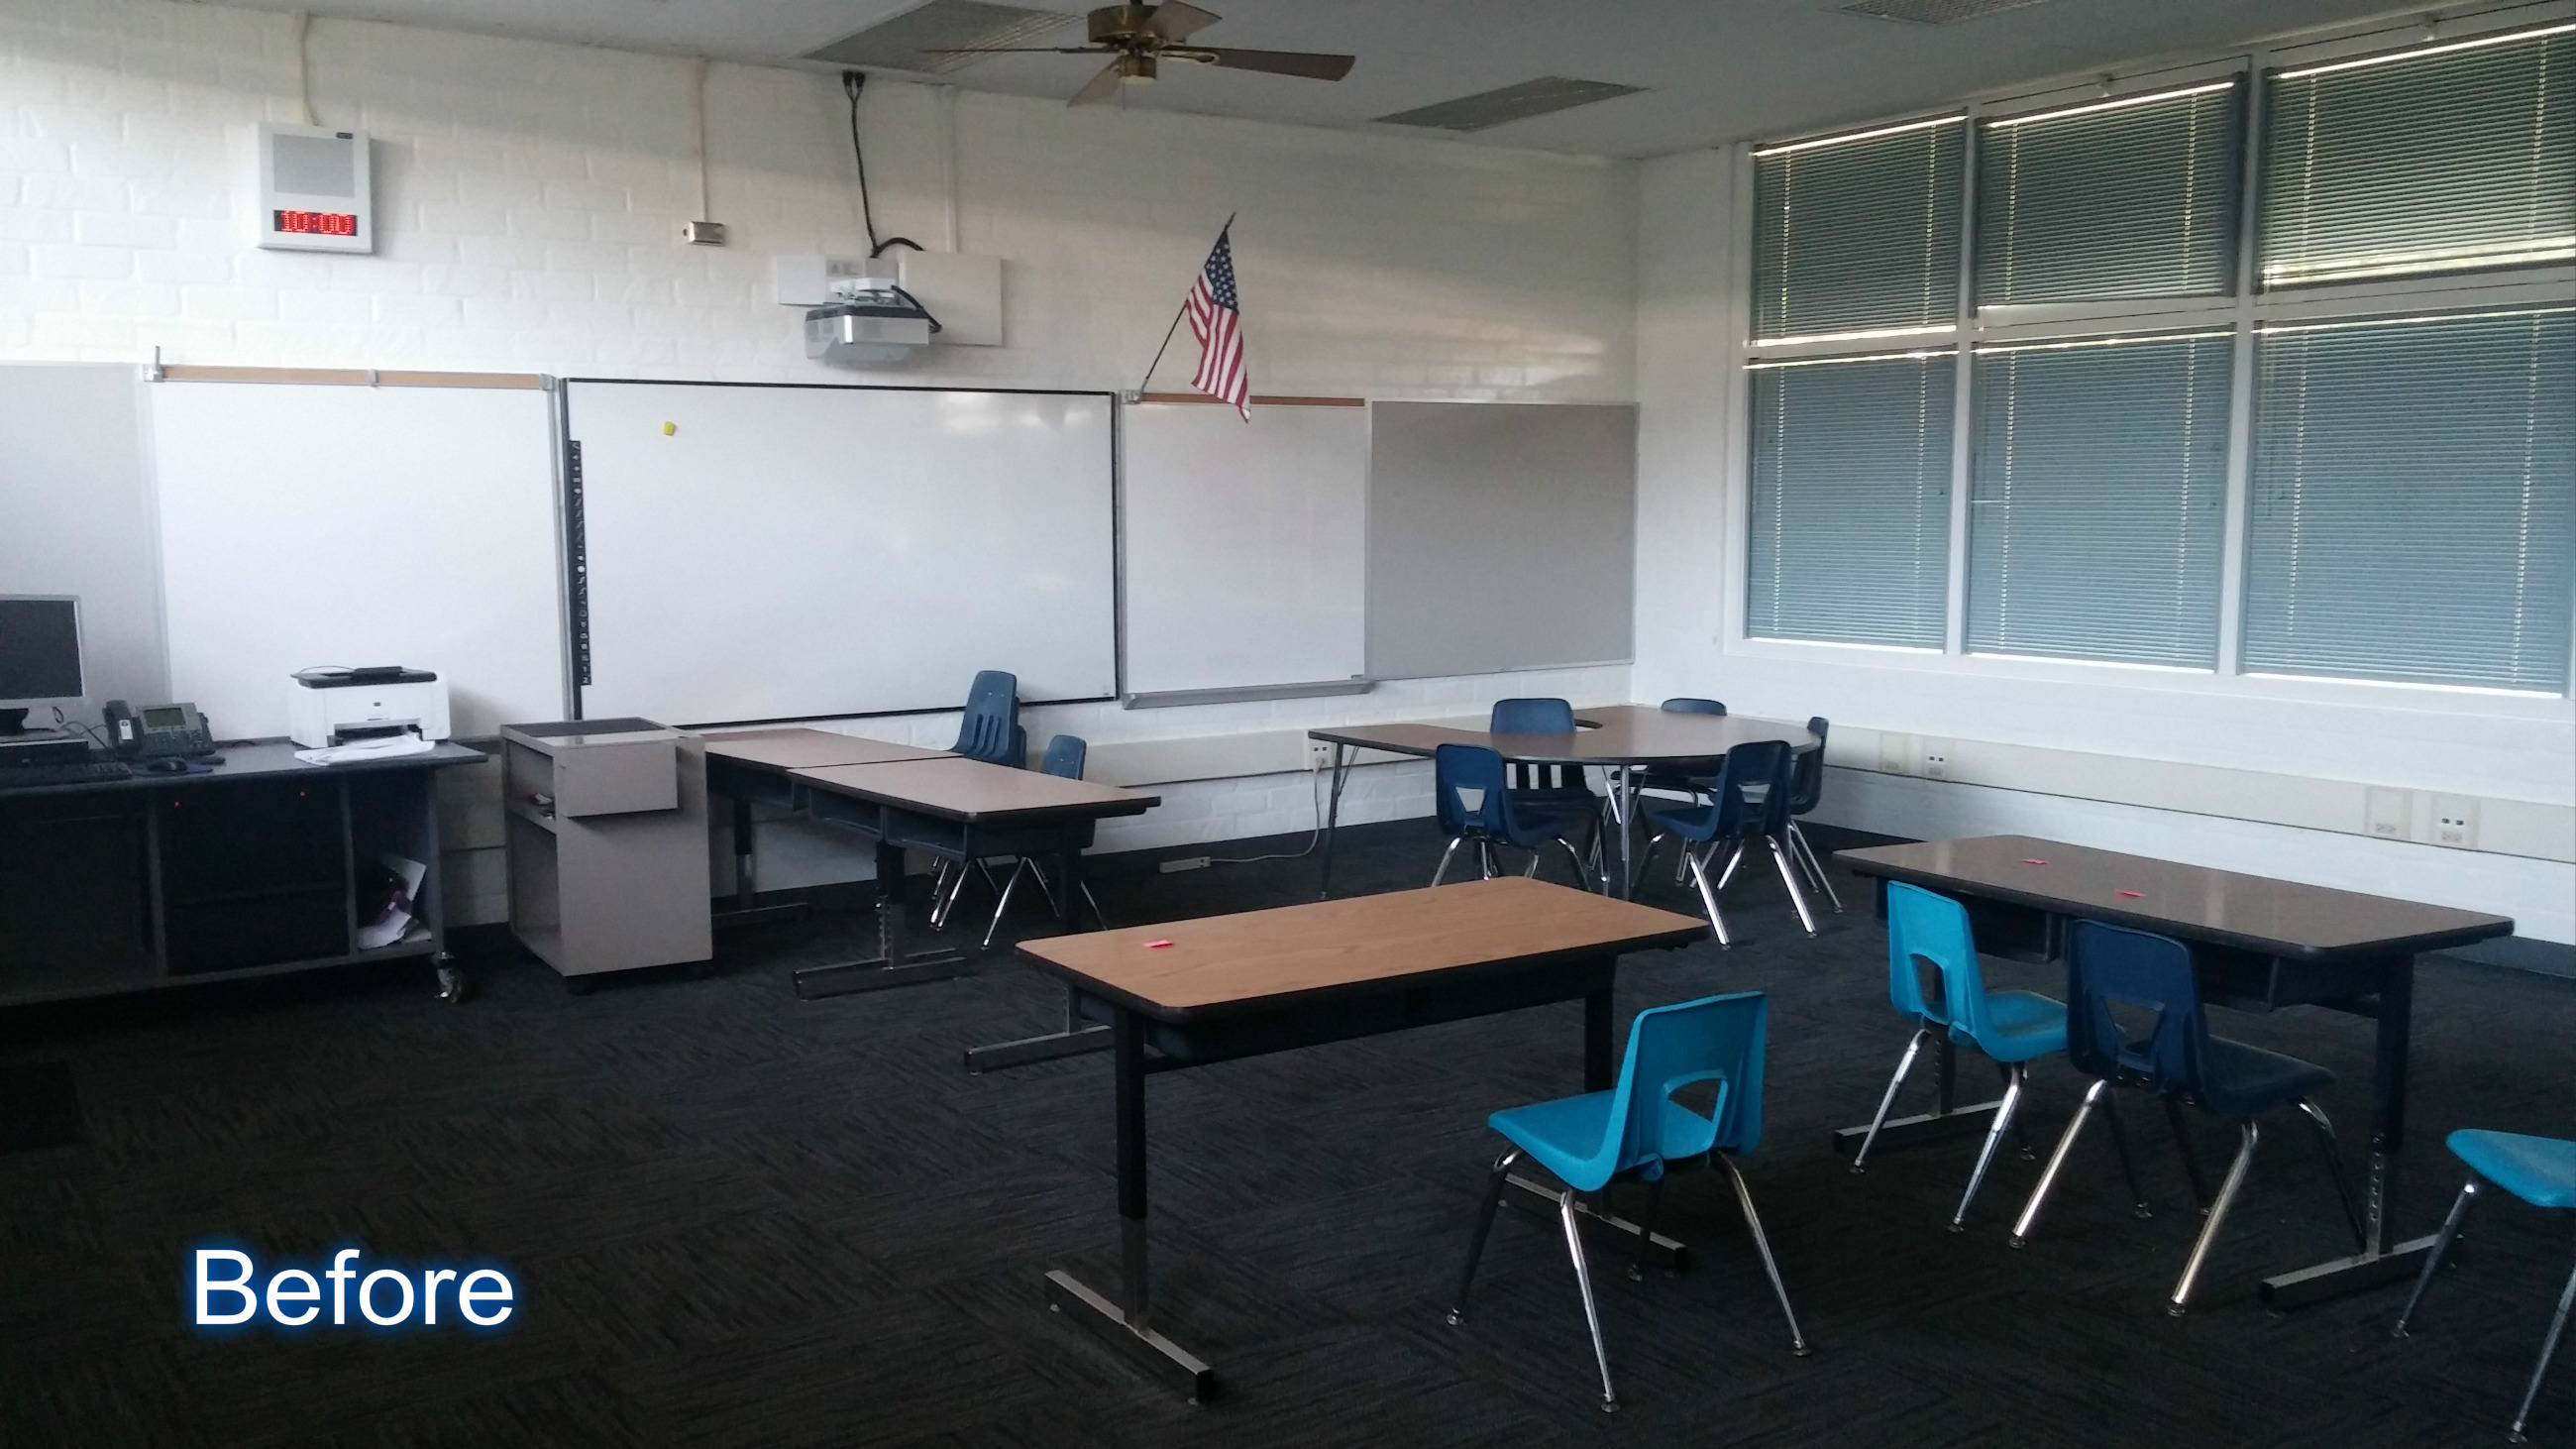 A classroom before using freestanding partitions to create privacy